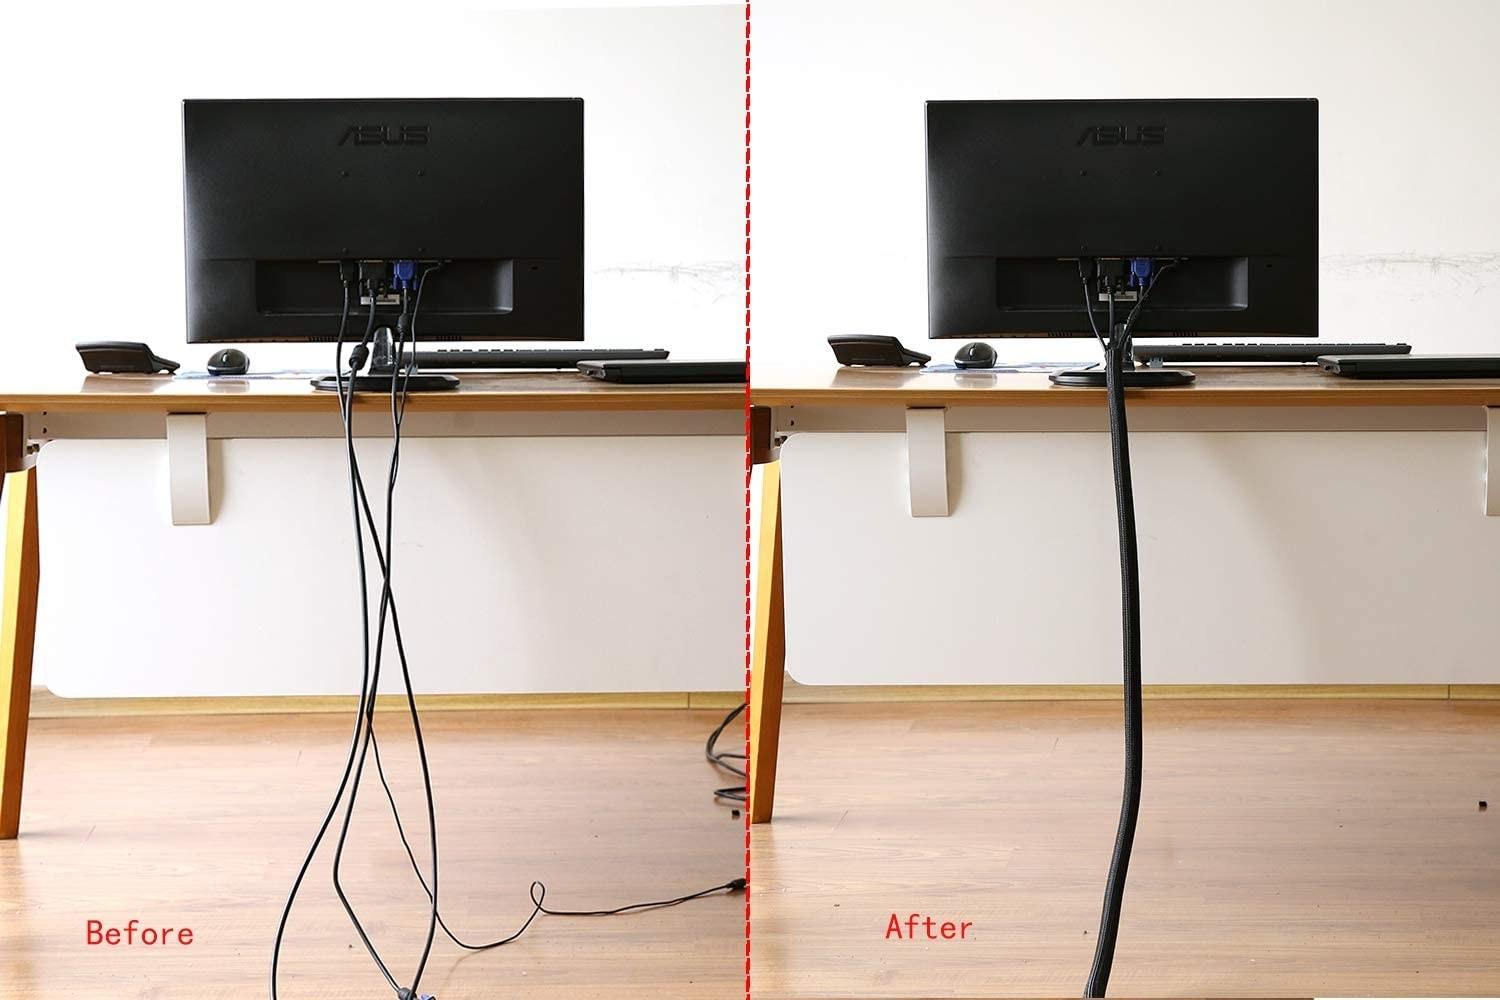 A before and after comparison of tangled cords and cords inside the cord tube